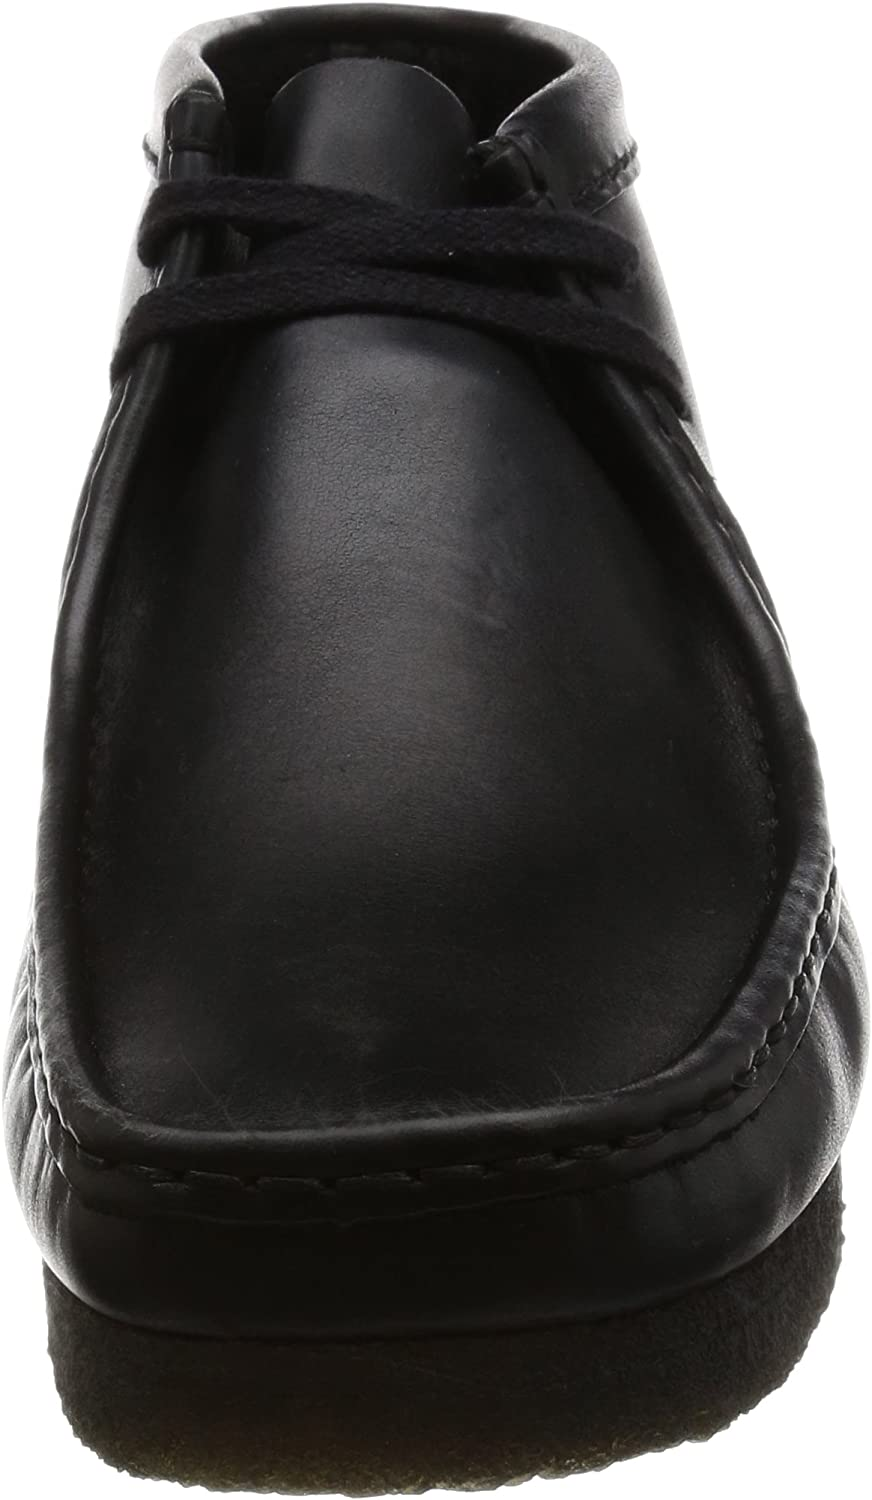 Clarks Men's Wallabee Moccasin Boots Black Black Leather